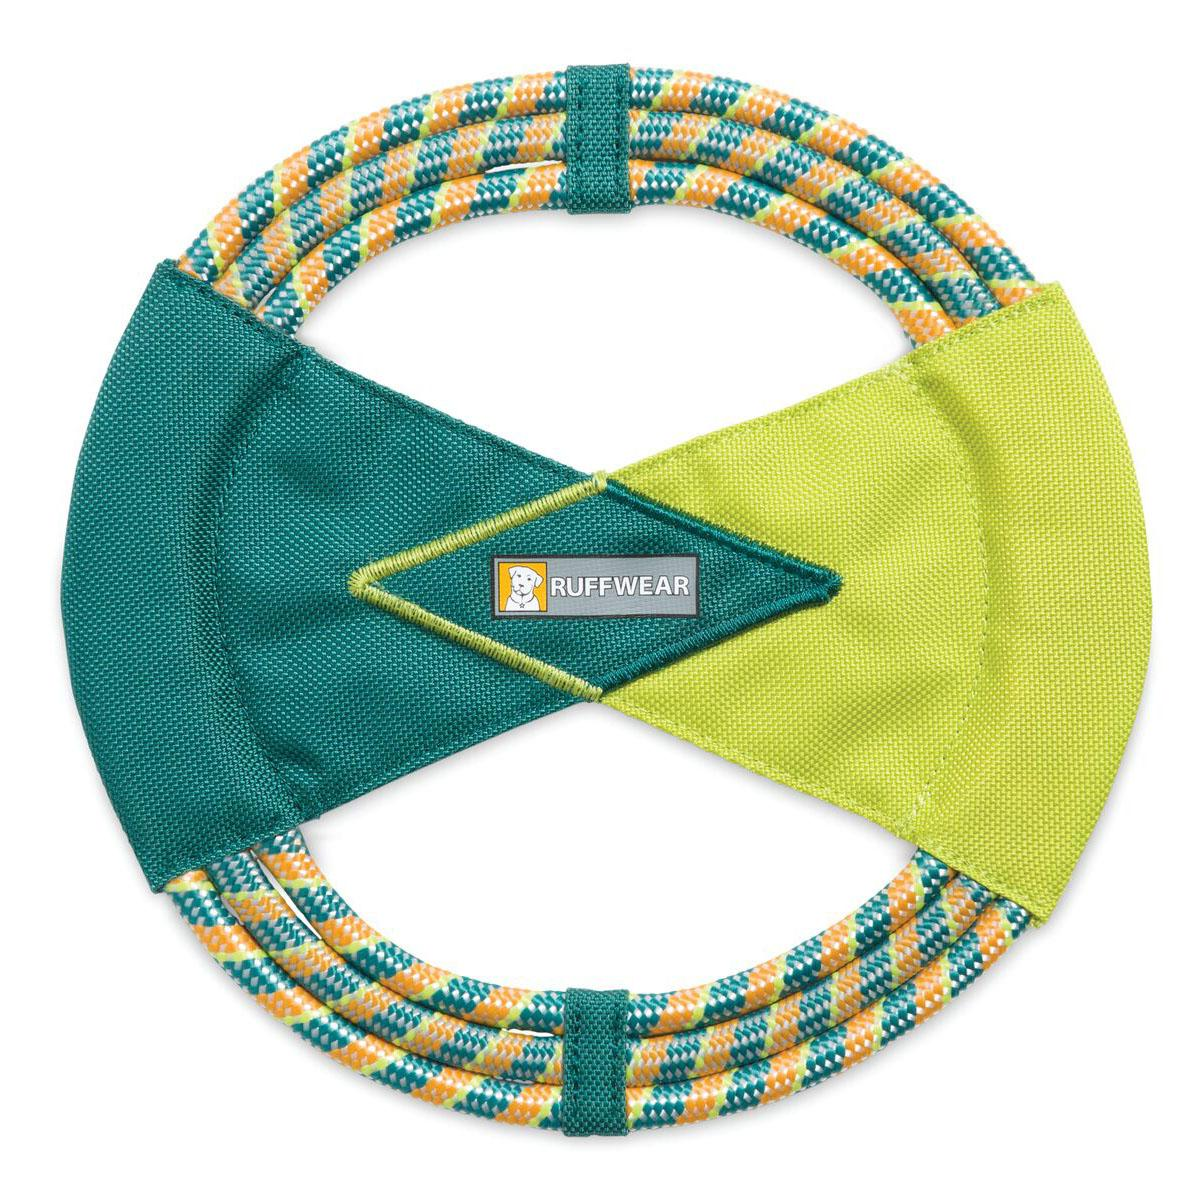 Pacific Ring Dog Toy by RuffWear - Tumalo Teal